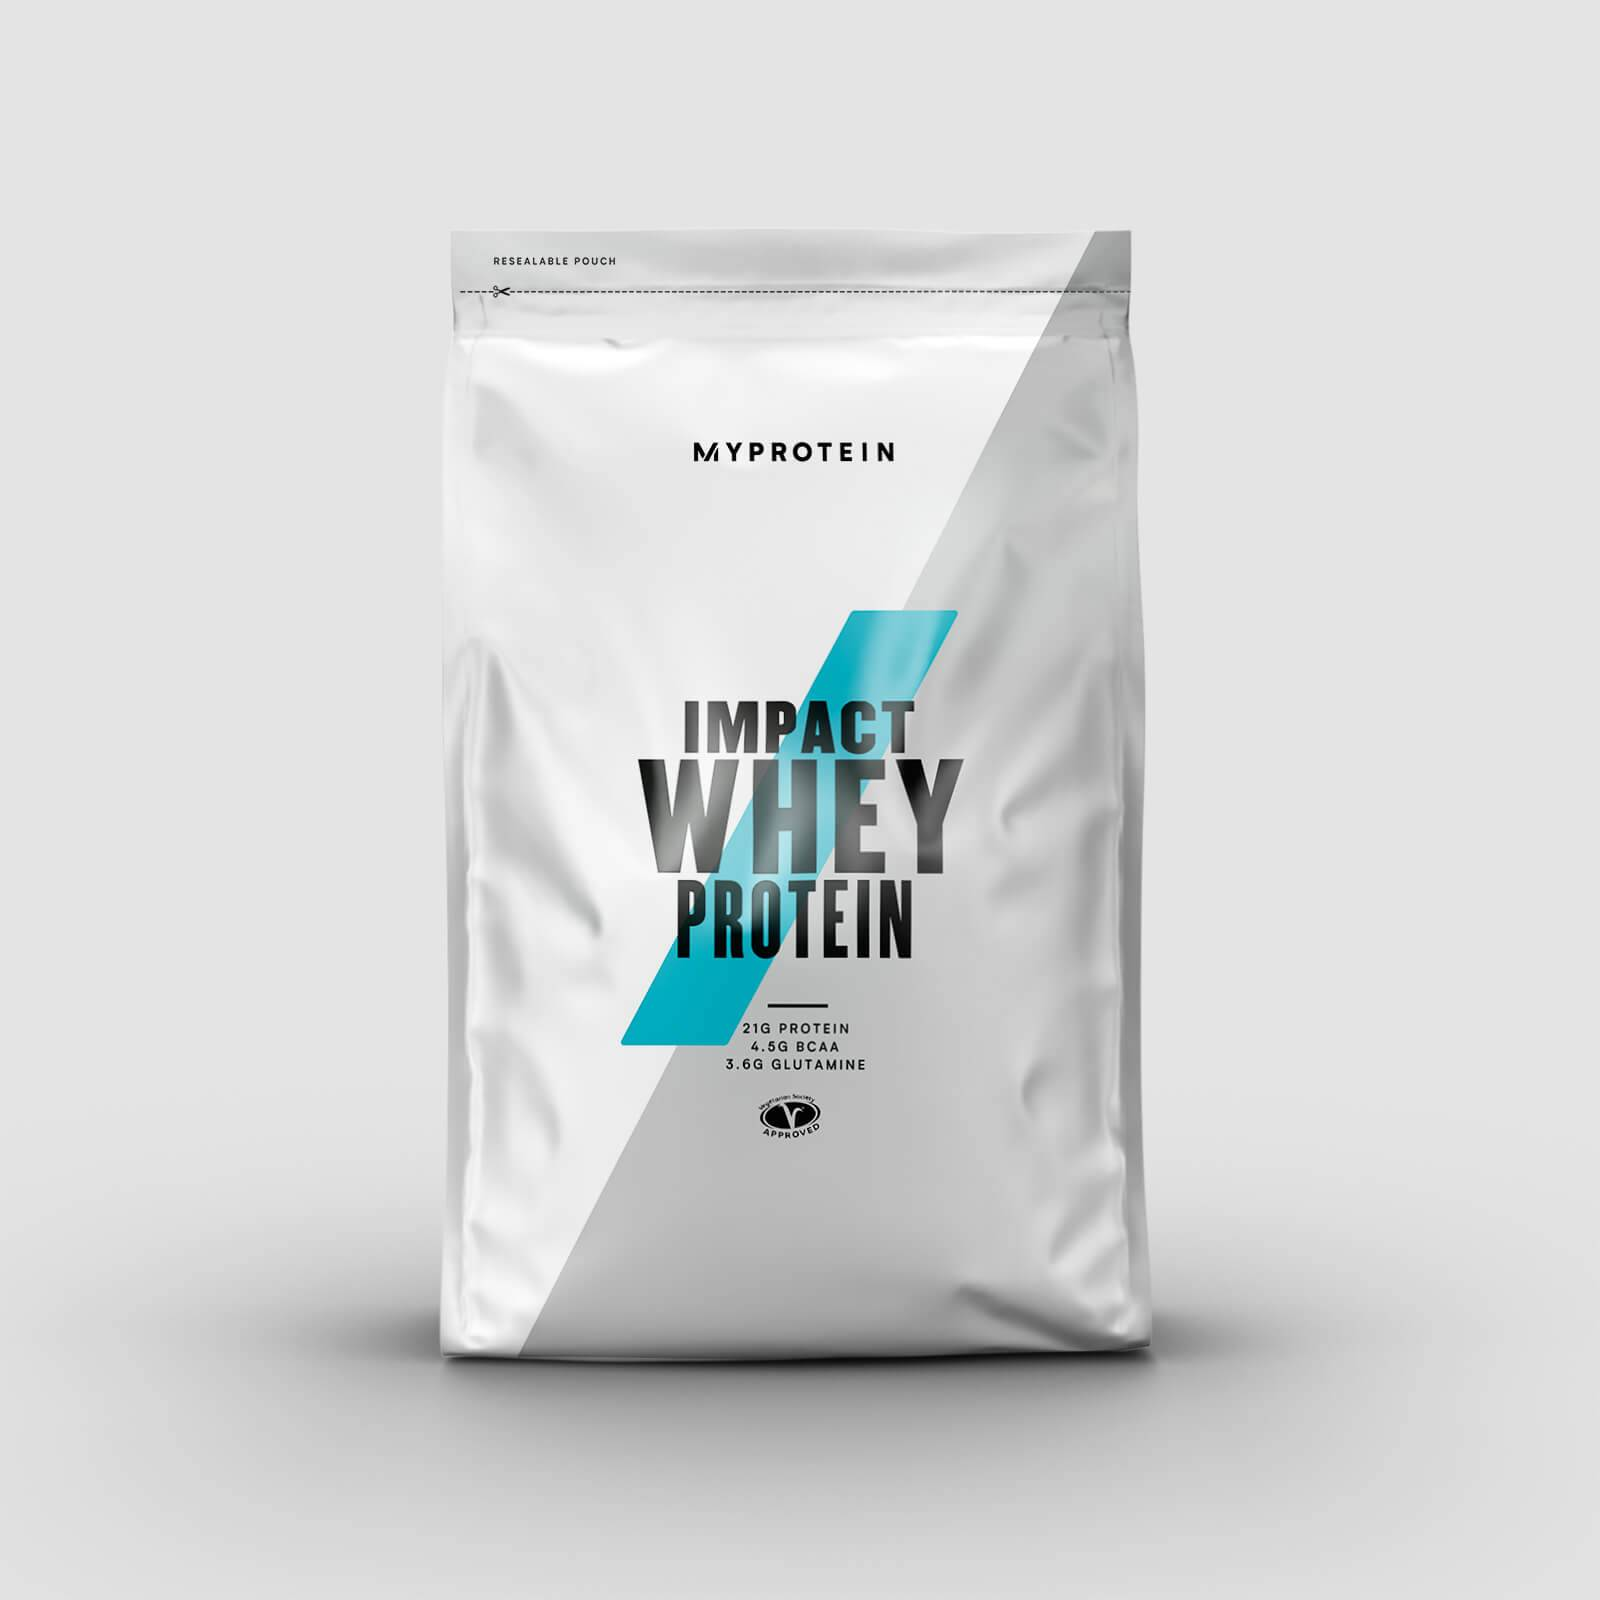 Myprotein Impact Whey Protein - 2.5kg - Stevia - Chocolat à la menthe